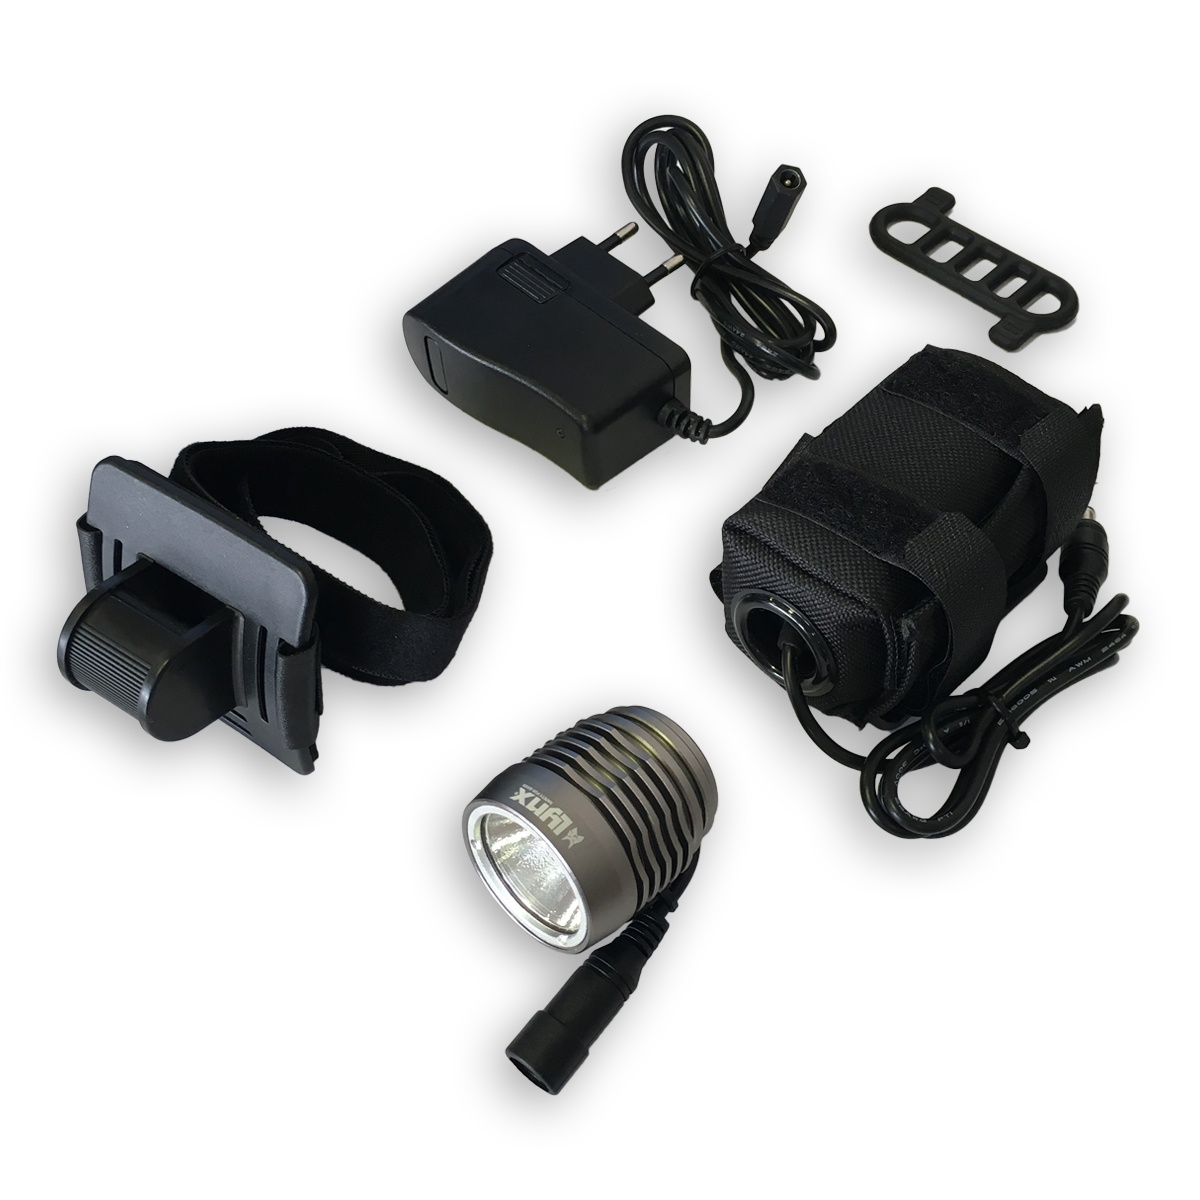 Adapter Led Verlichting Lynx Headlight Pro High Power Led Battery Grey Internet Bikes